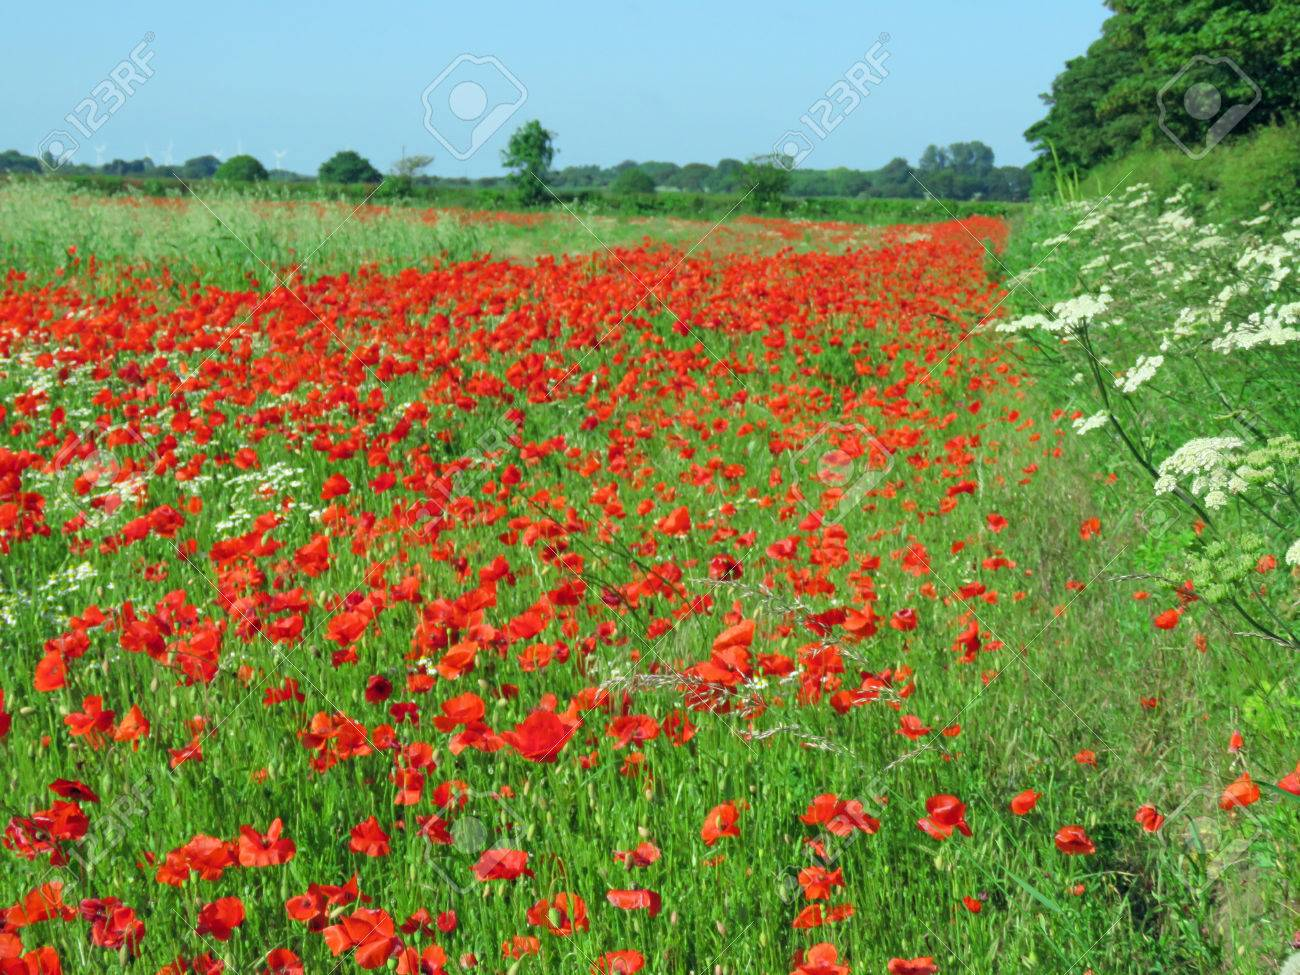 A meadow full of poppies and grasses in rural English countryside Standard-Bild - 82552573